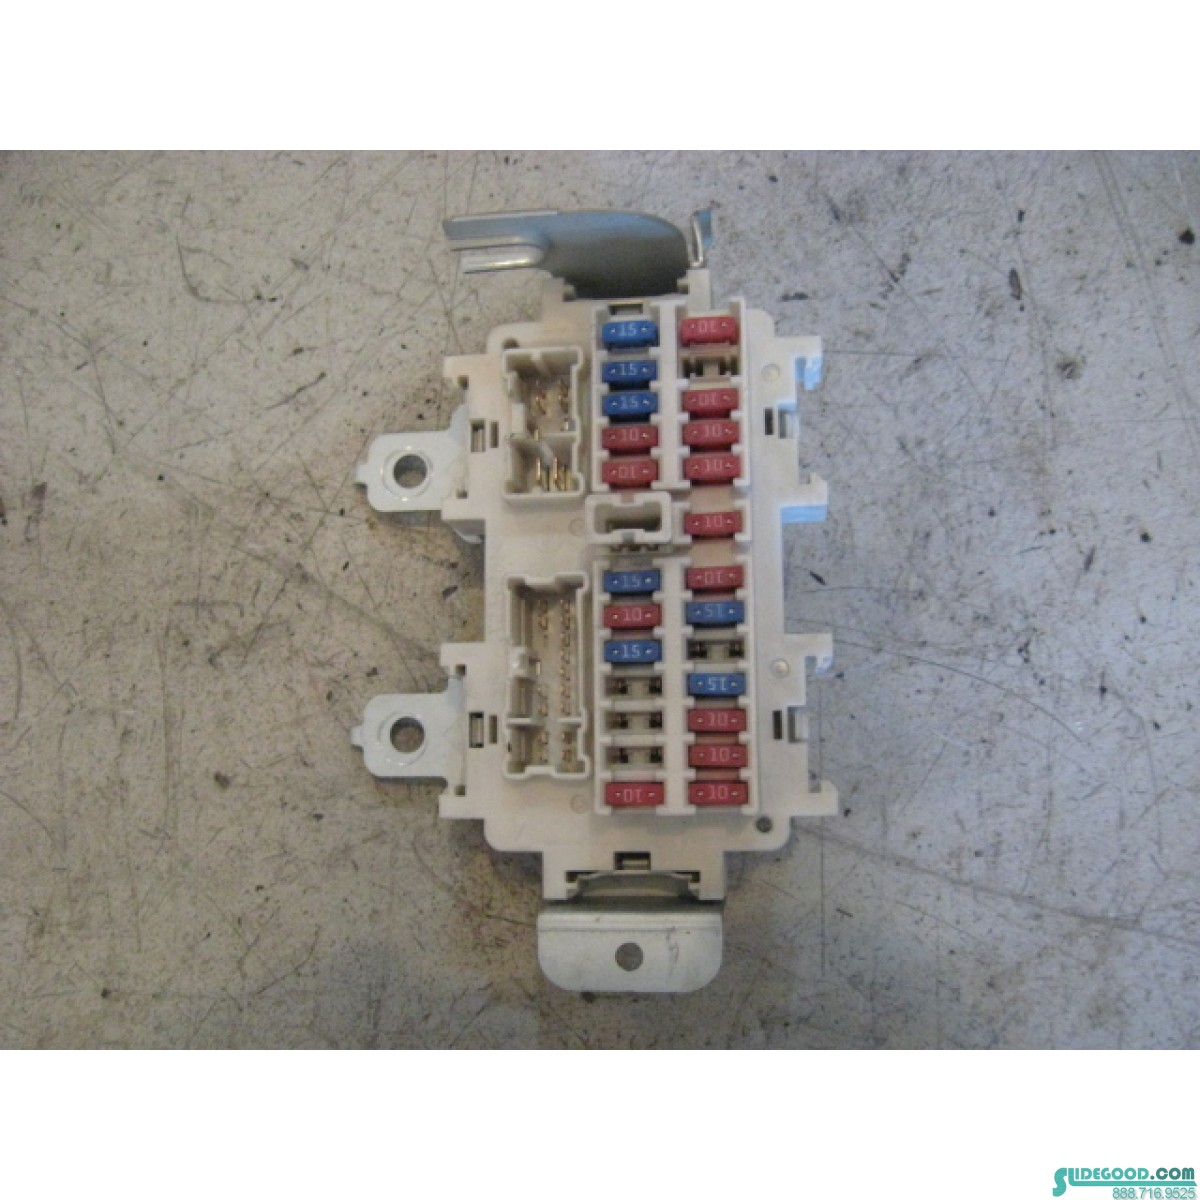 9736_01 nissan 350z interior fuse box r9736 nissan 350z fuse box diagram at n-0.co